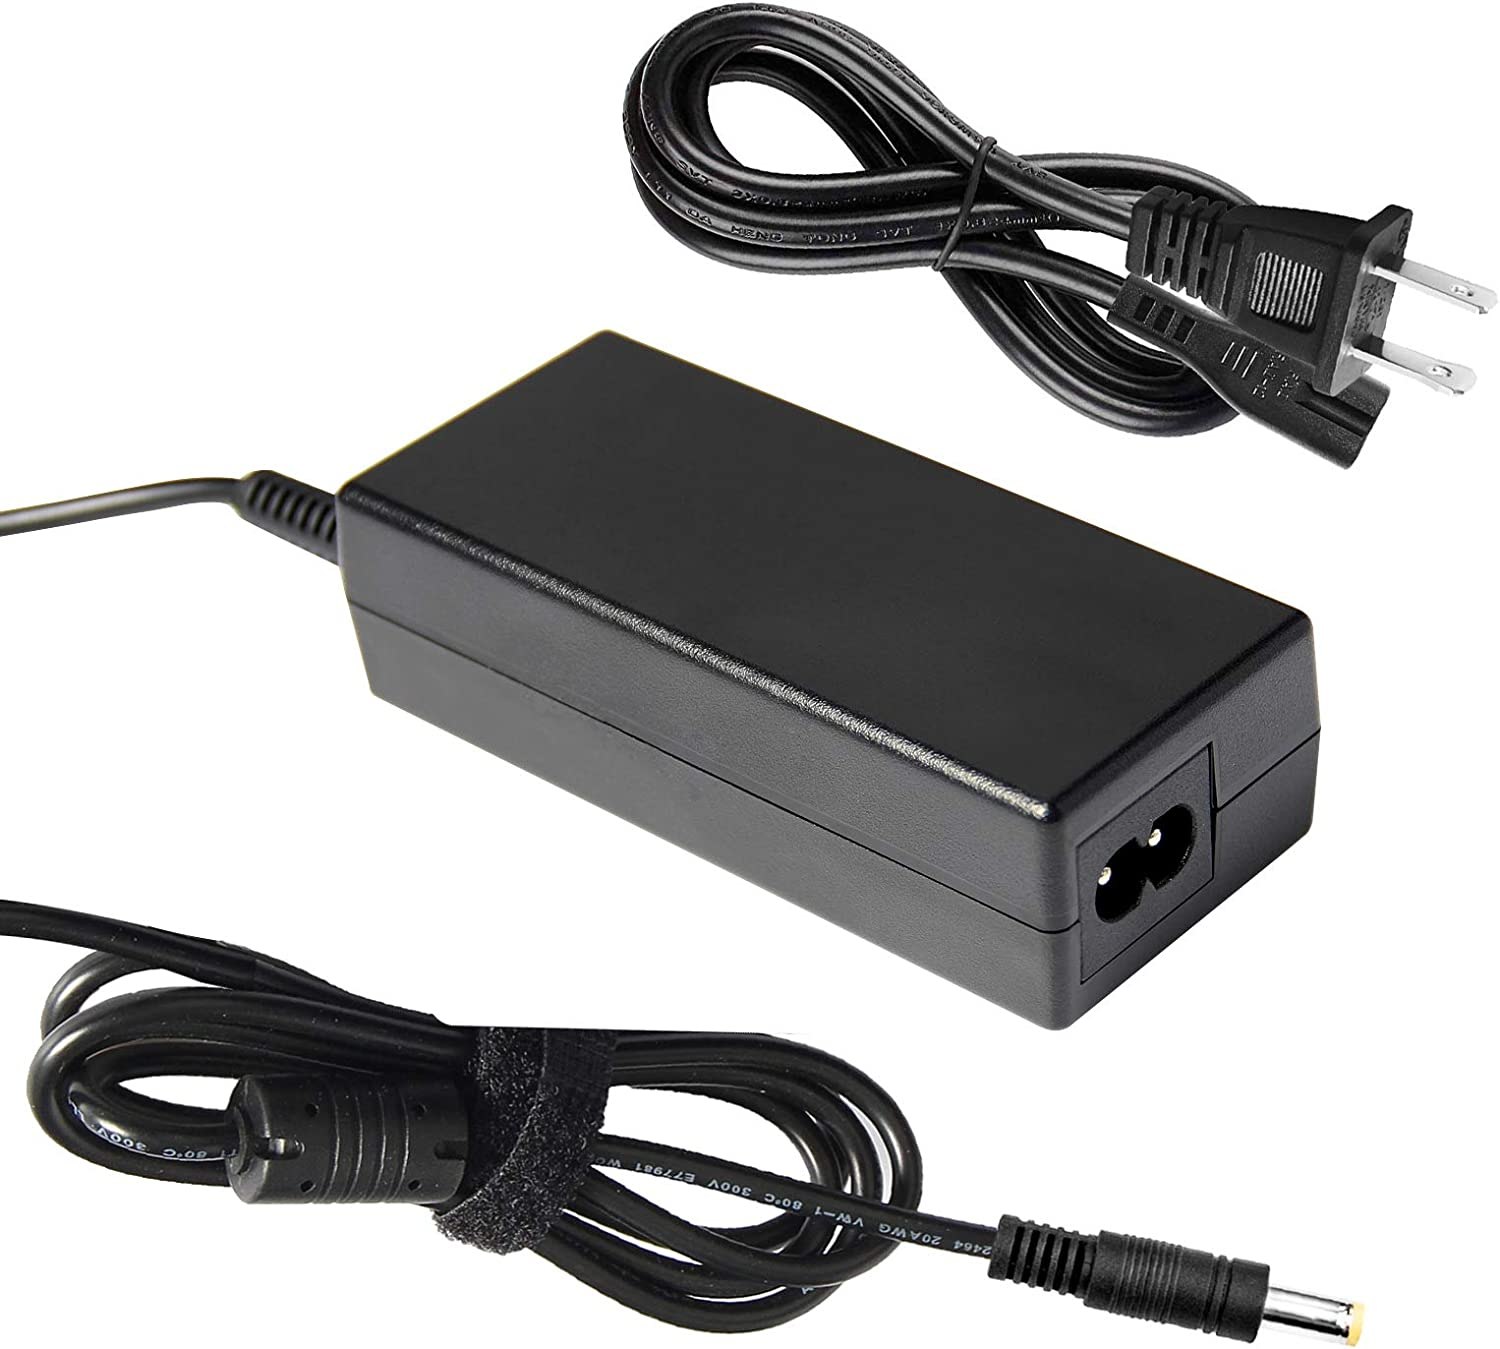 ARyee 19V 2.37A AC Adapter Laptop Charger Power Supply for Toshiba Satellite PA3822U-1ACA PA3822E-1AC3 C50 C55 C55D C55DT C55T C75 C75D E45T L50 L55 L55D L75 S50 S55 S55t S70 S75